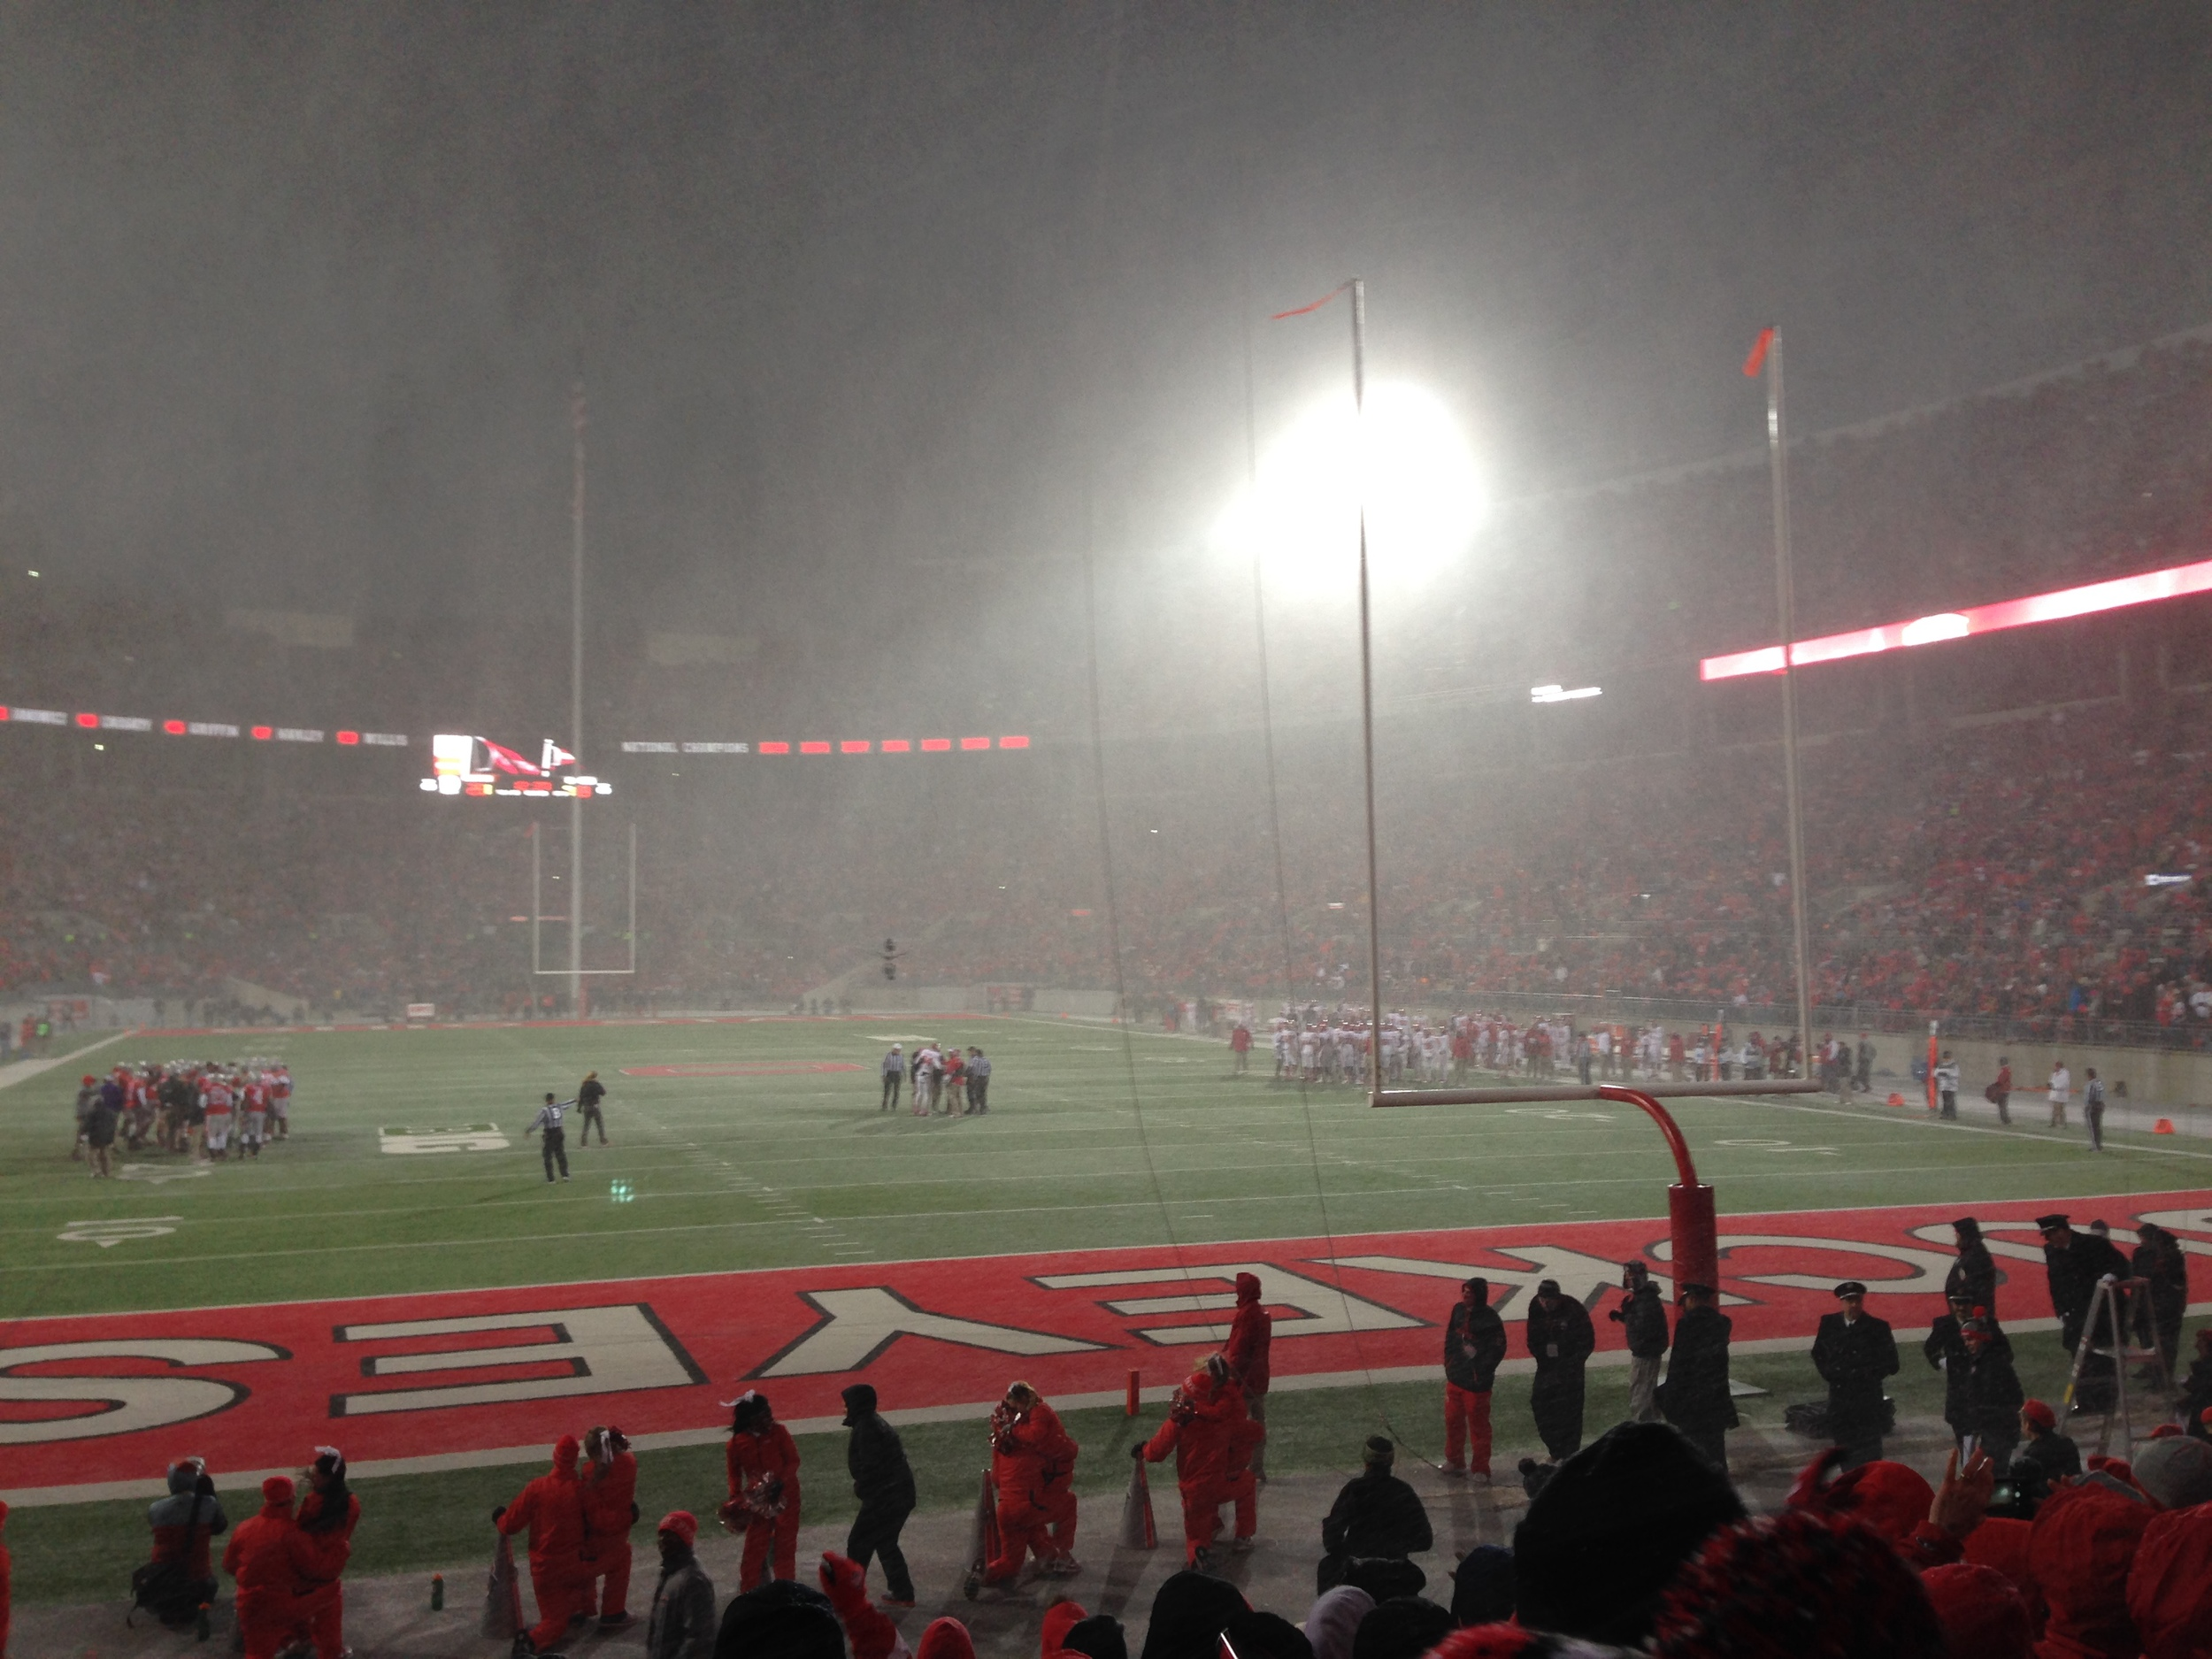 It was a little chilly, but the snow created a great atmosphere